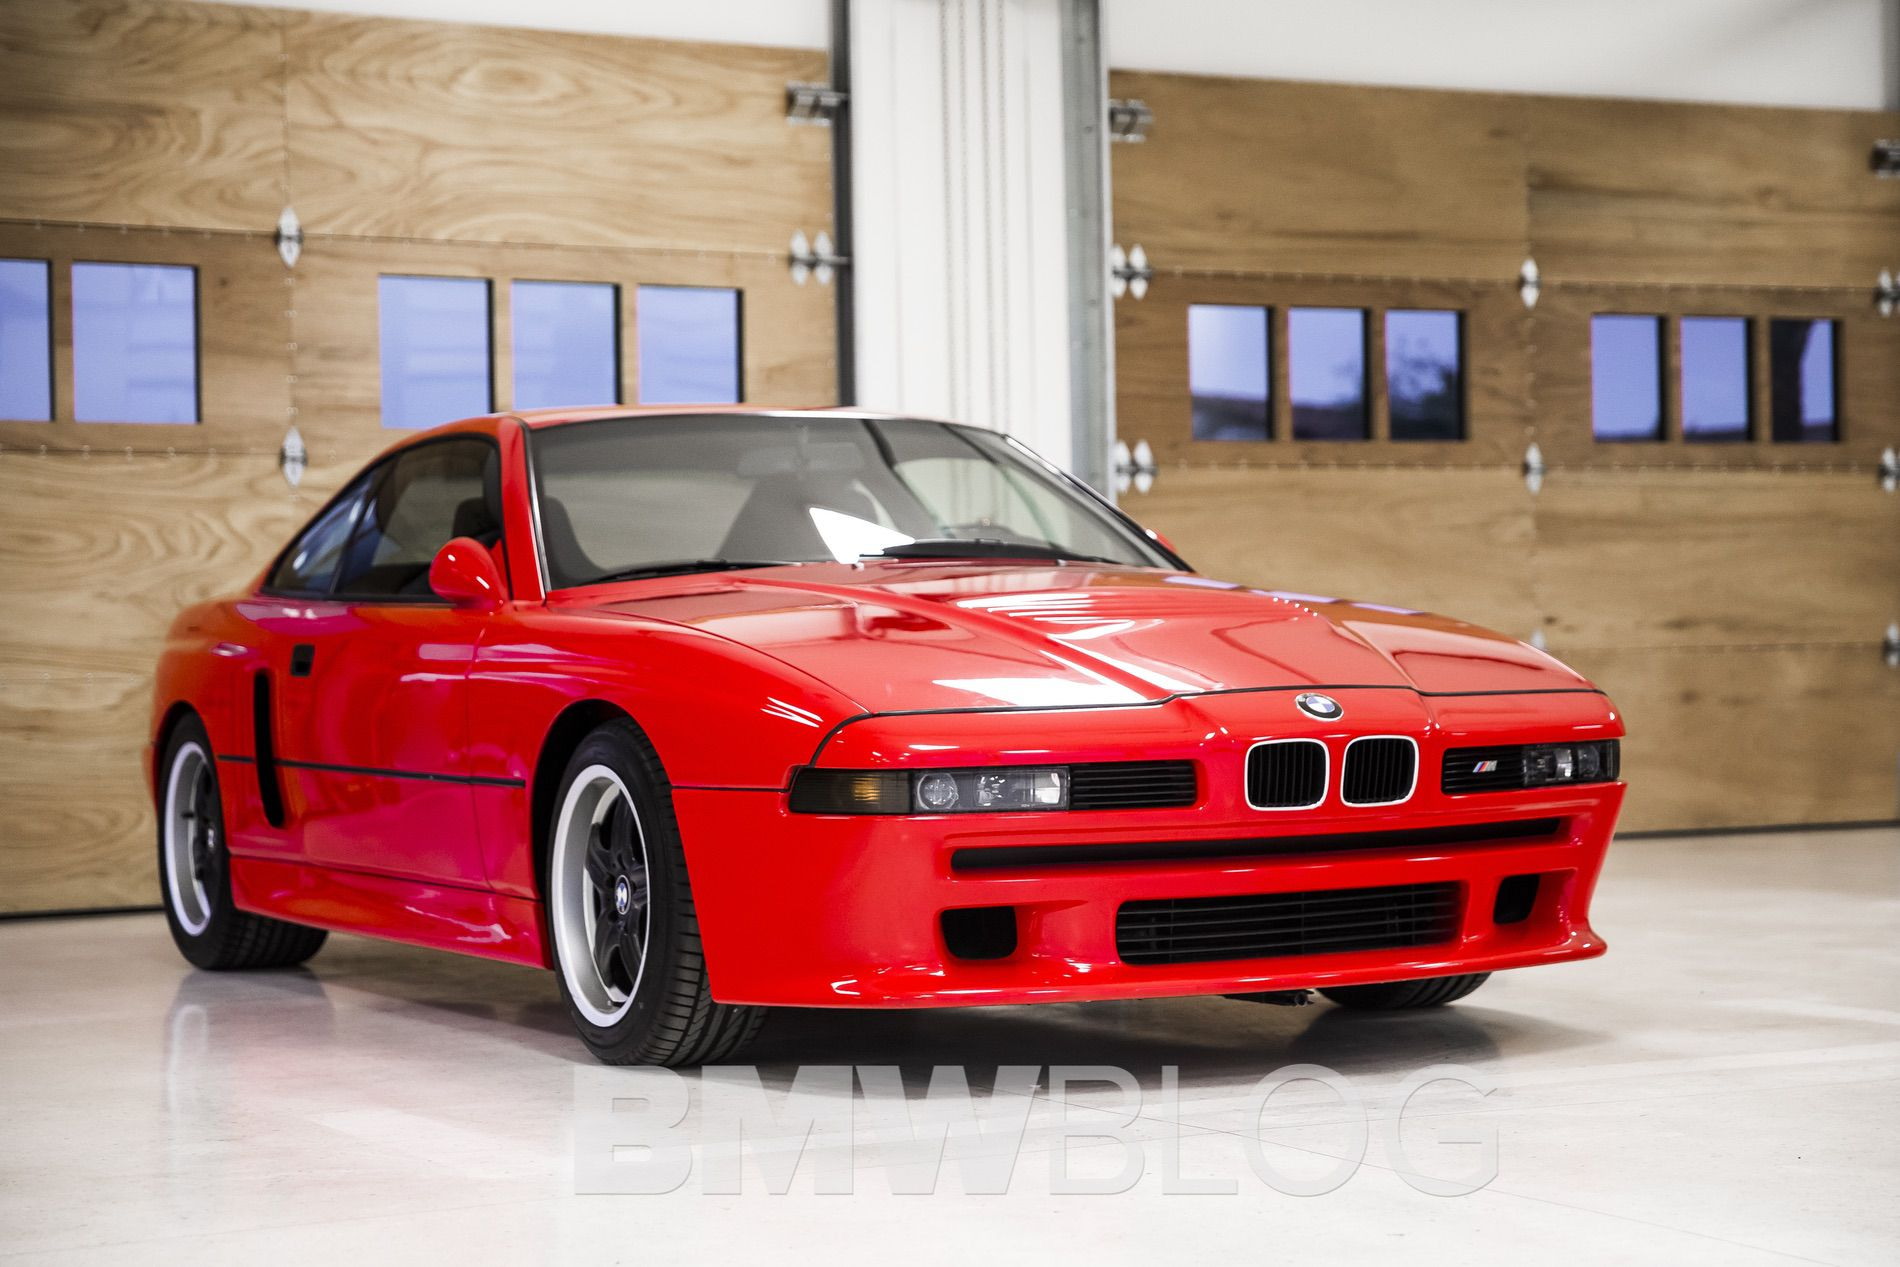 BMW M8 E31 prototype 04